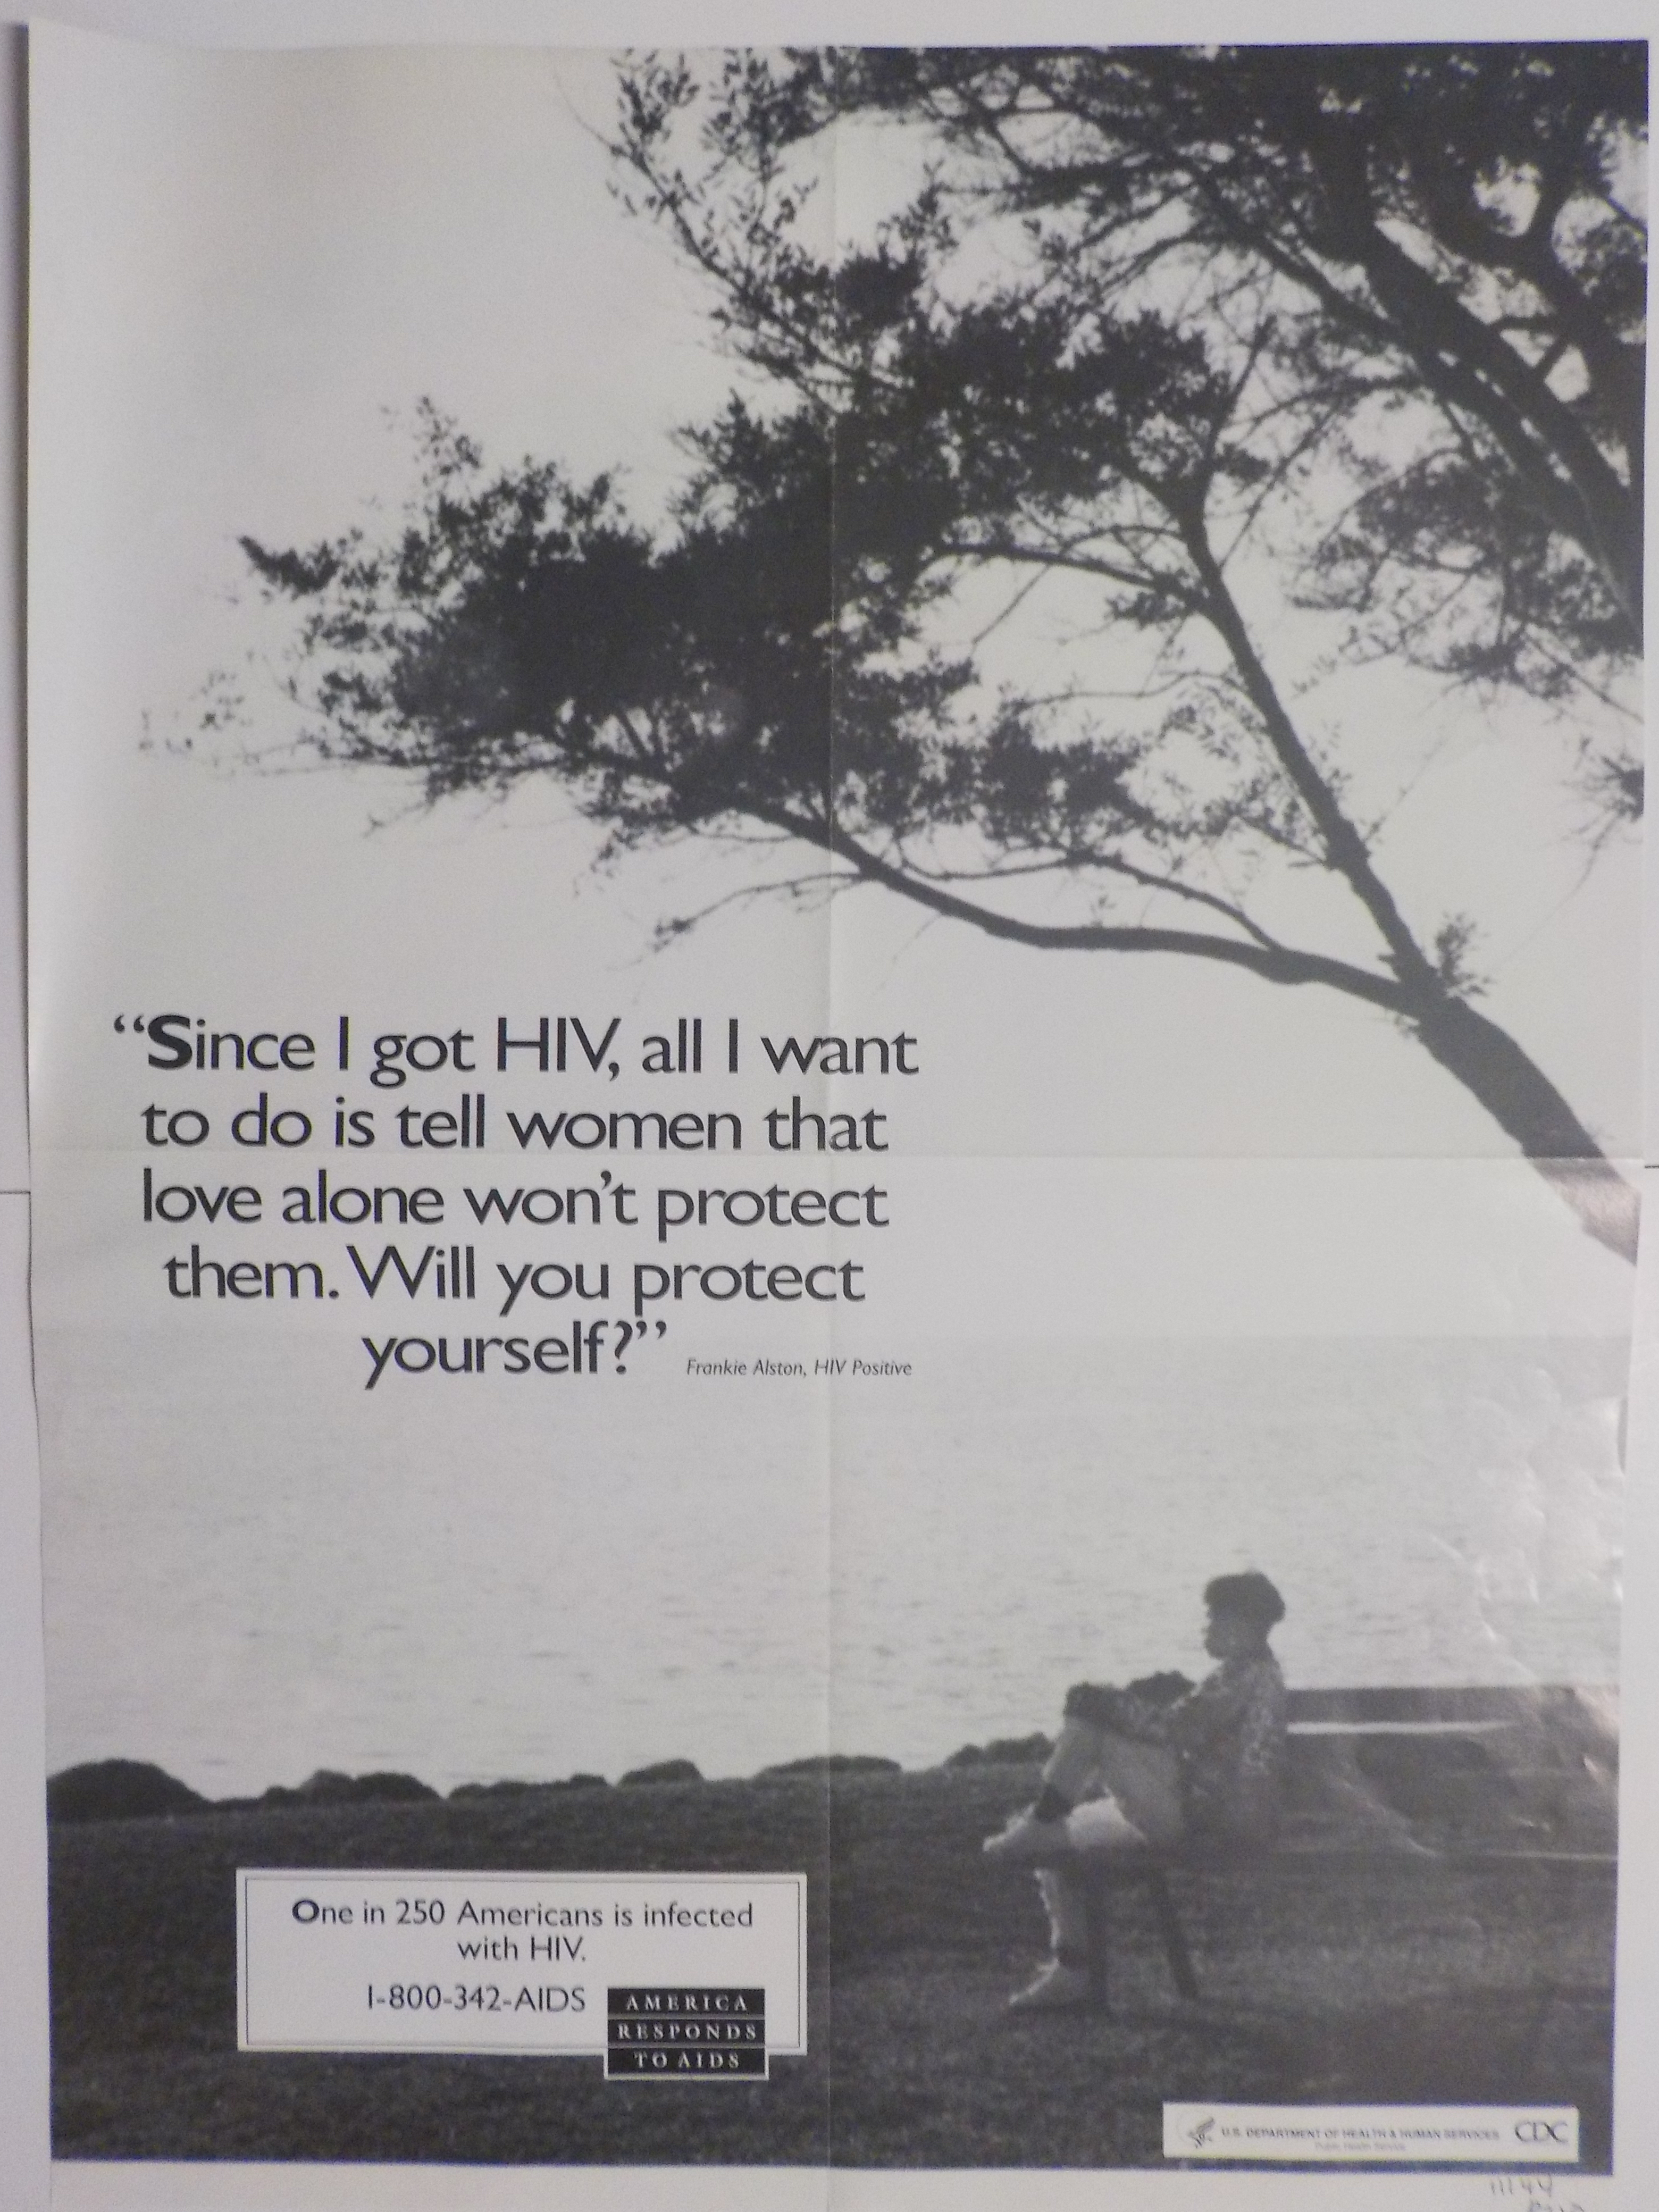 Since I got HIV, all I want to do is tell women that love alone won't protect them. Will you protect yourself?' -Frankie Alson, HIV Positive